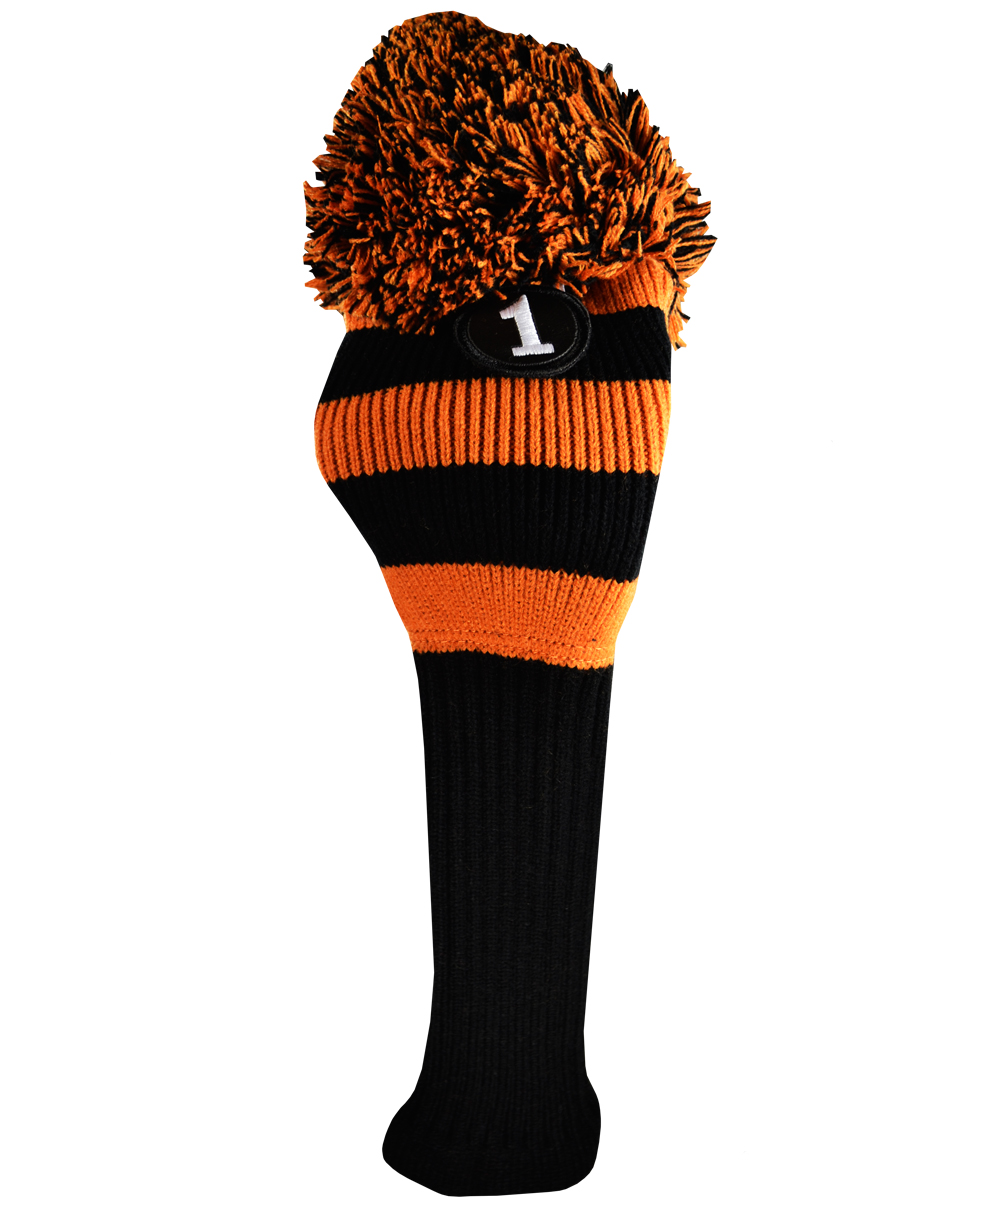 Knitting Pattern Golf Driver Cover : knitted head covers - Video Search Engine at Search.com